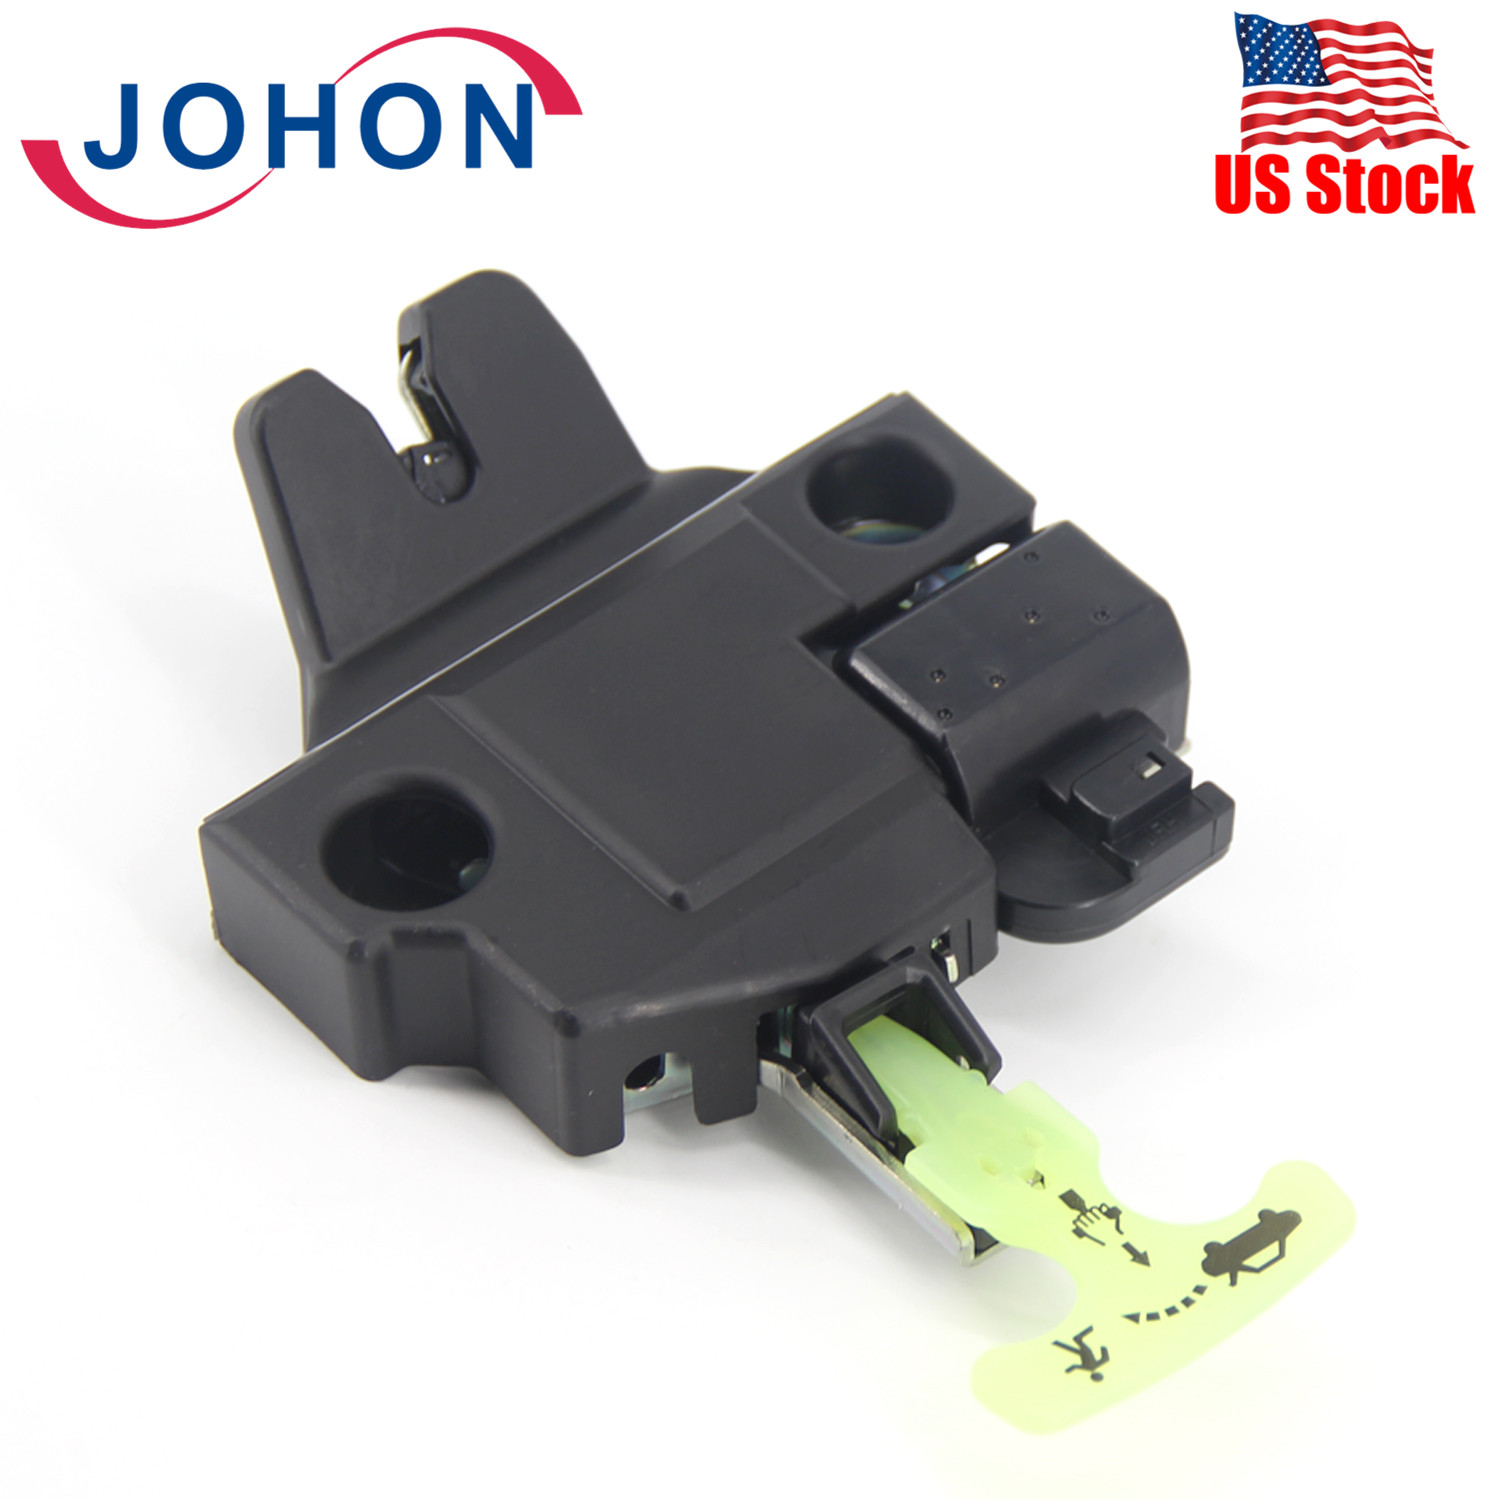 Latch Door Actuator for 2007 2008 2009 2010 2011 Toyota Camry Replaces 64600-06010 931-860 64600-33120 Keyless Entry Trunk Lock